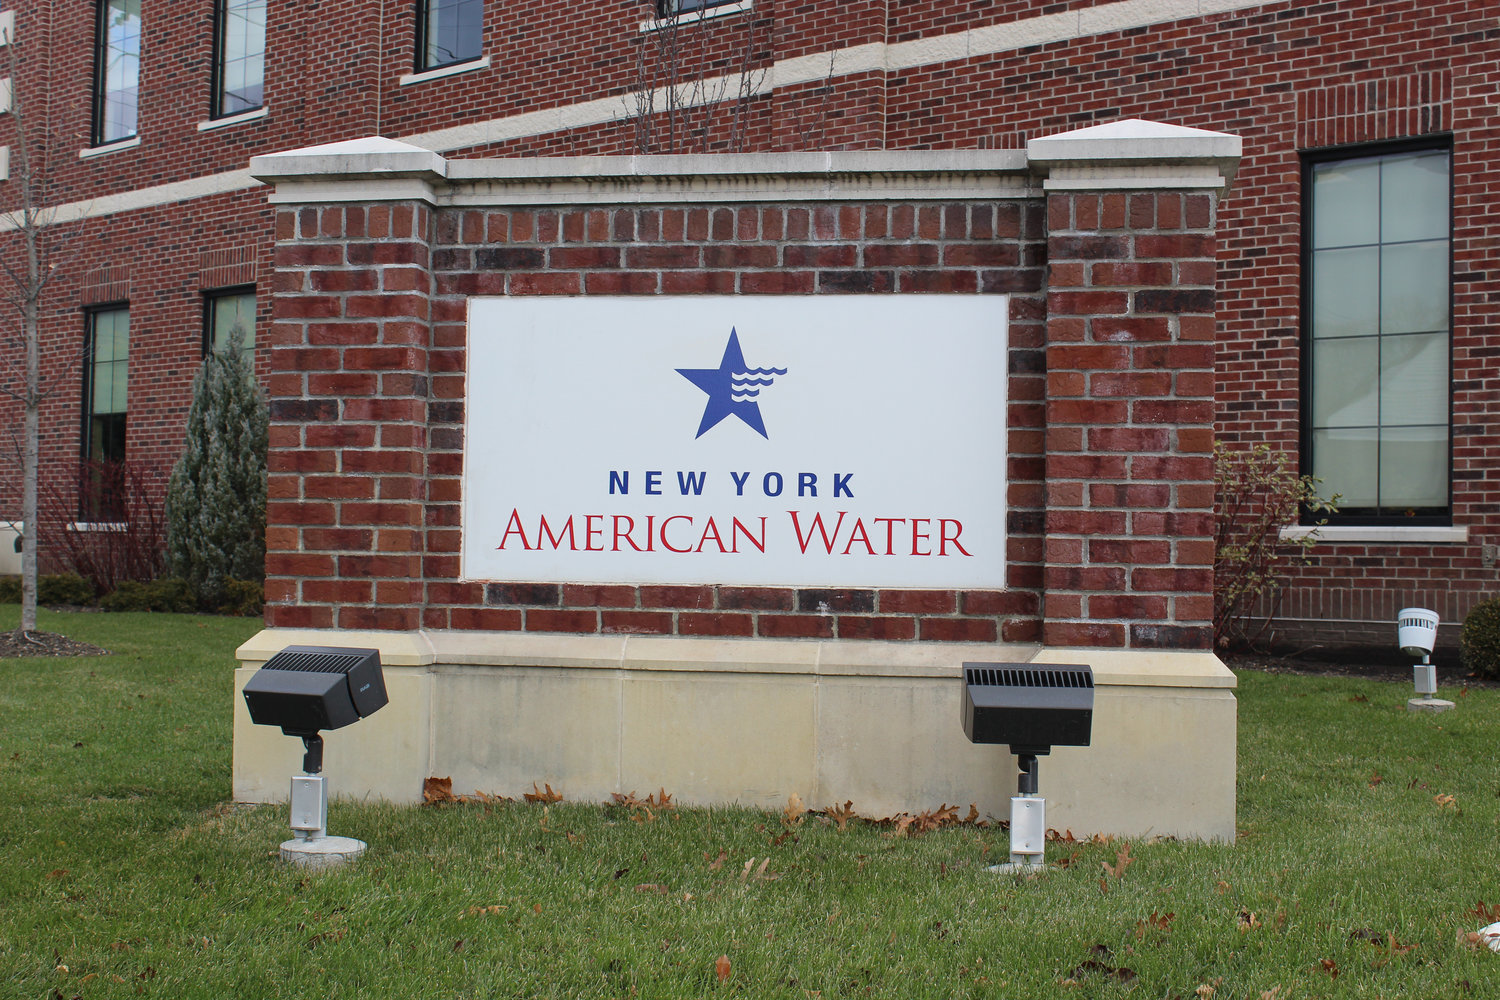 New York American Water's corporate offices in Merrick.